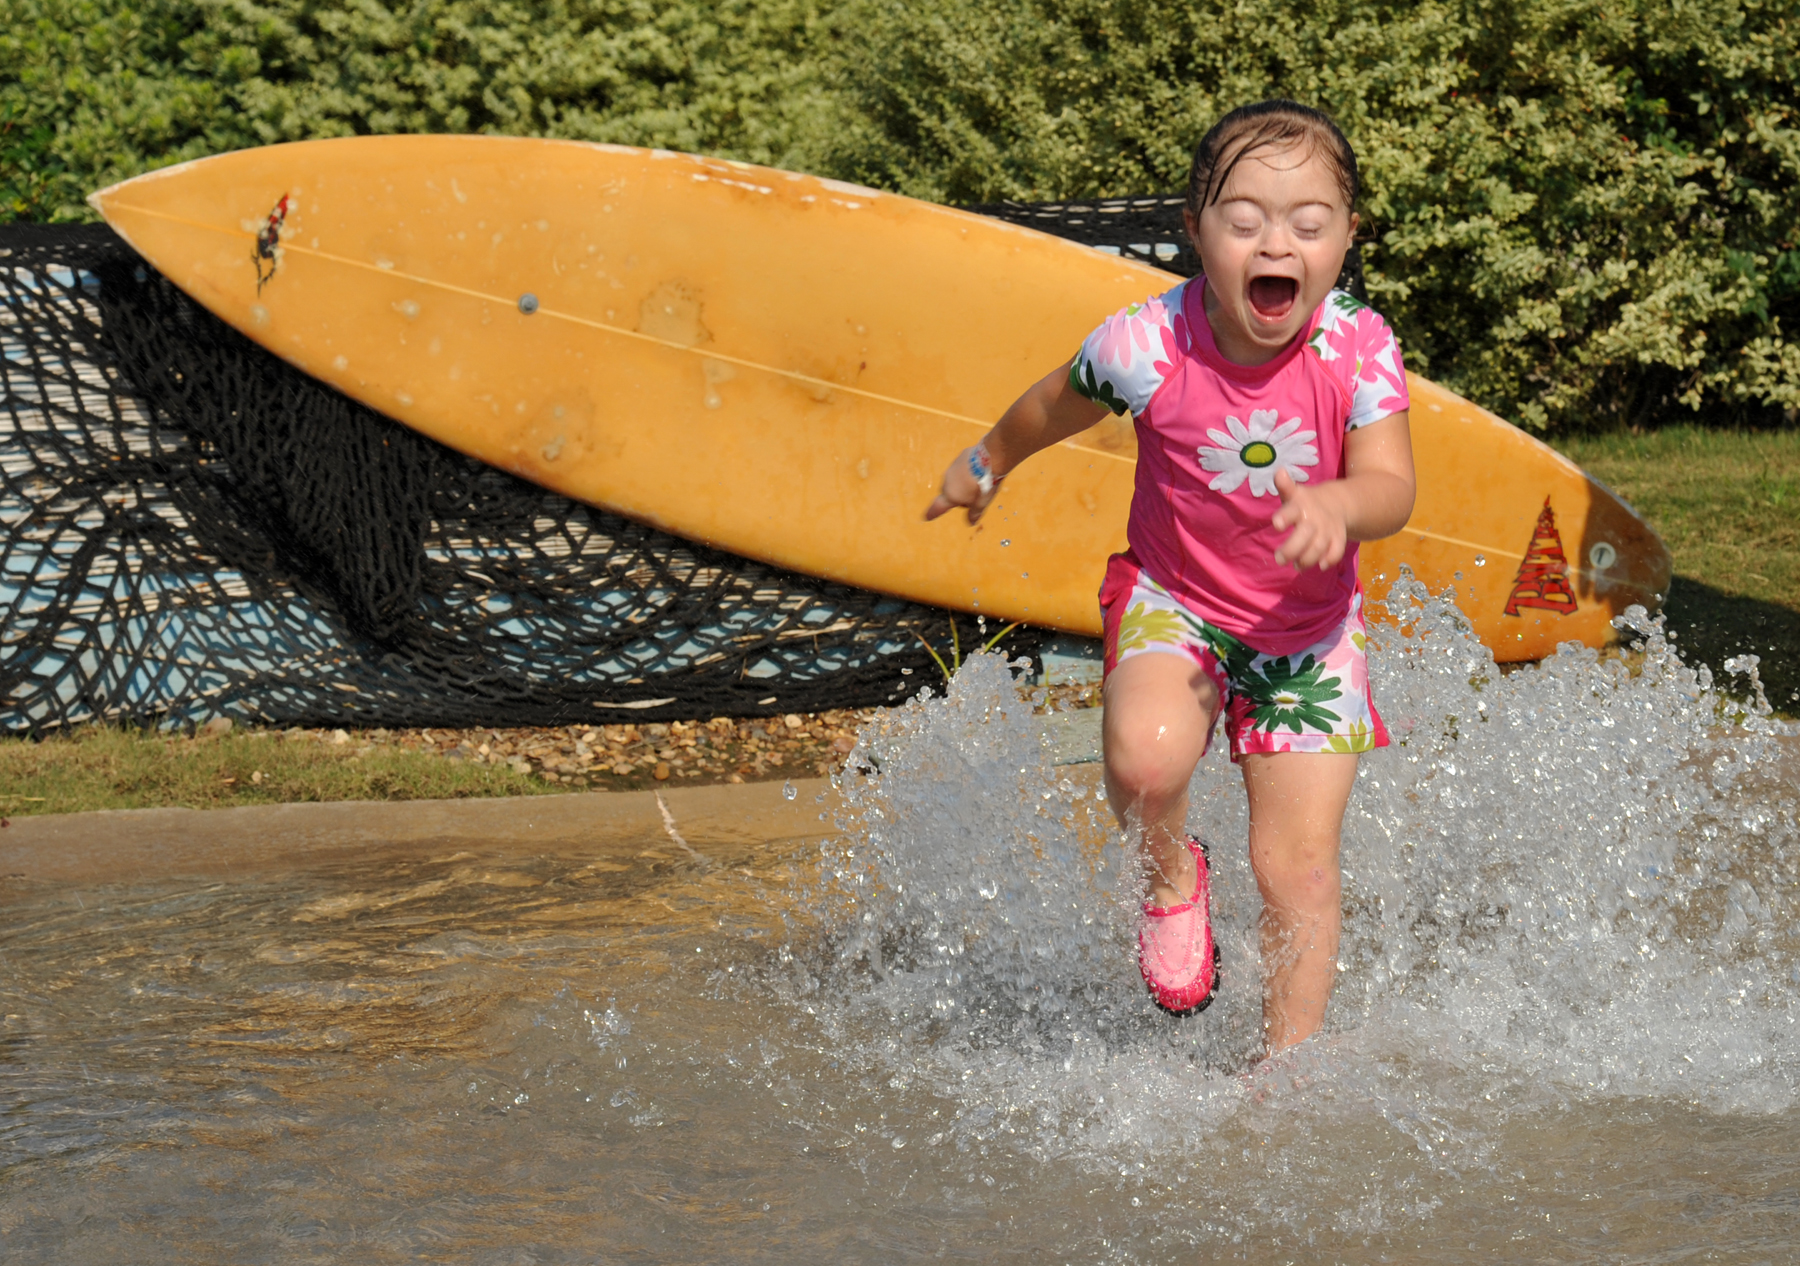 Hawaiian Falls opens early Saturday for special needs children and their families